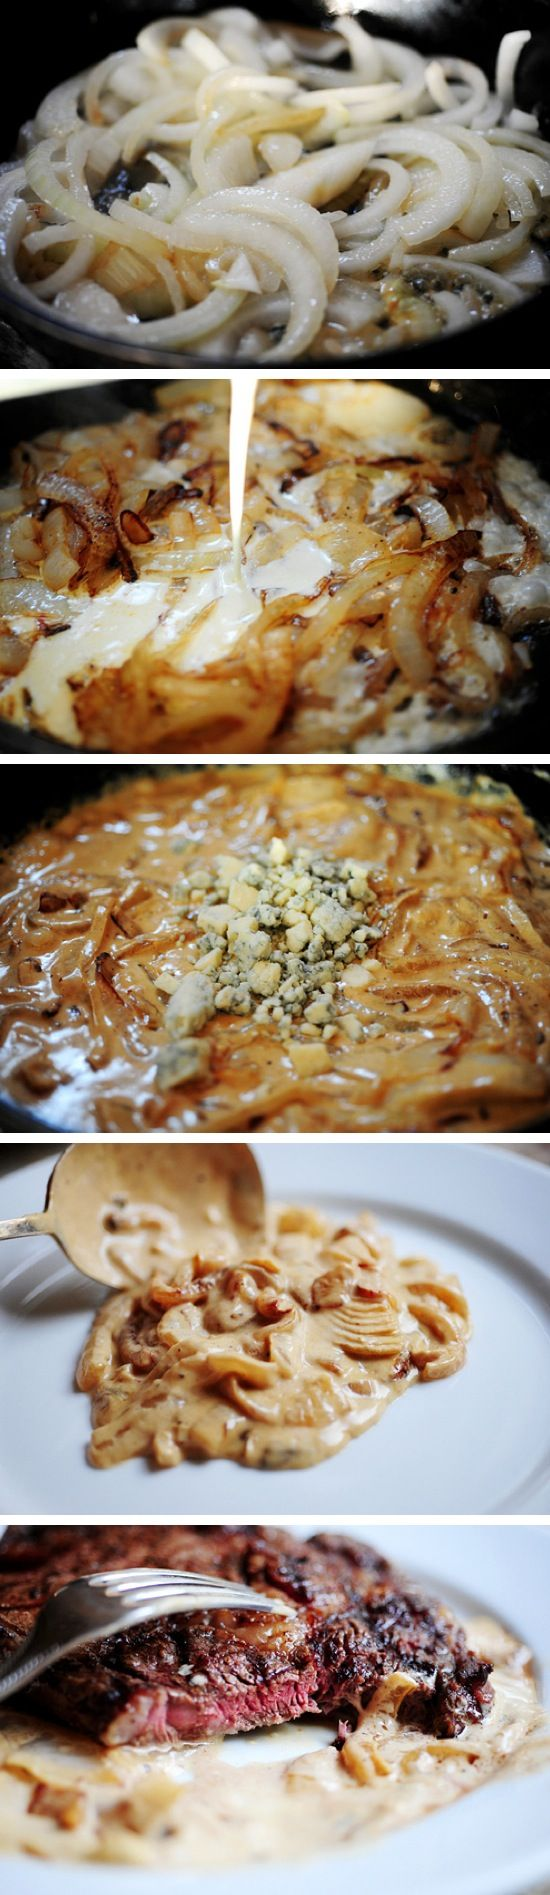 25+ best ideas about Blue cheese steaks on Pinterest ...